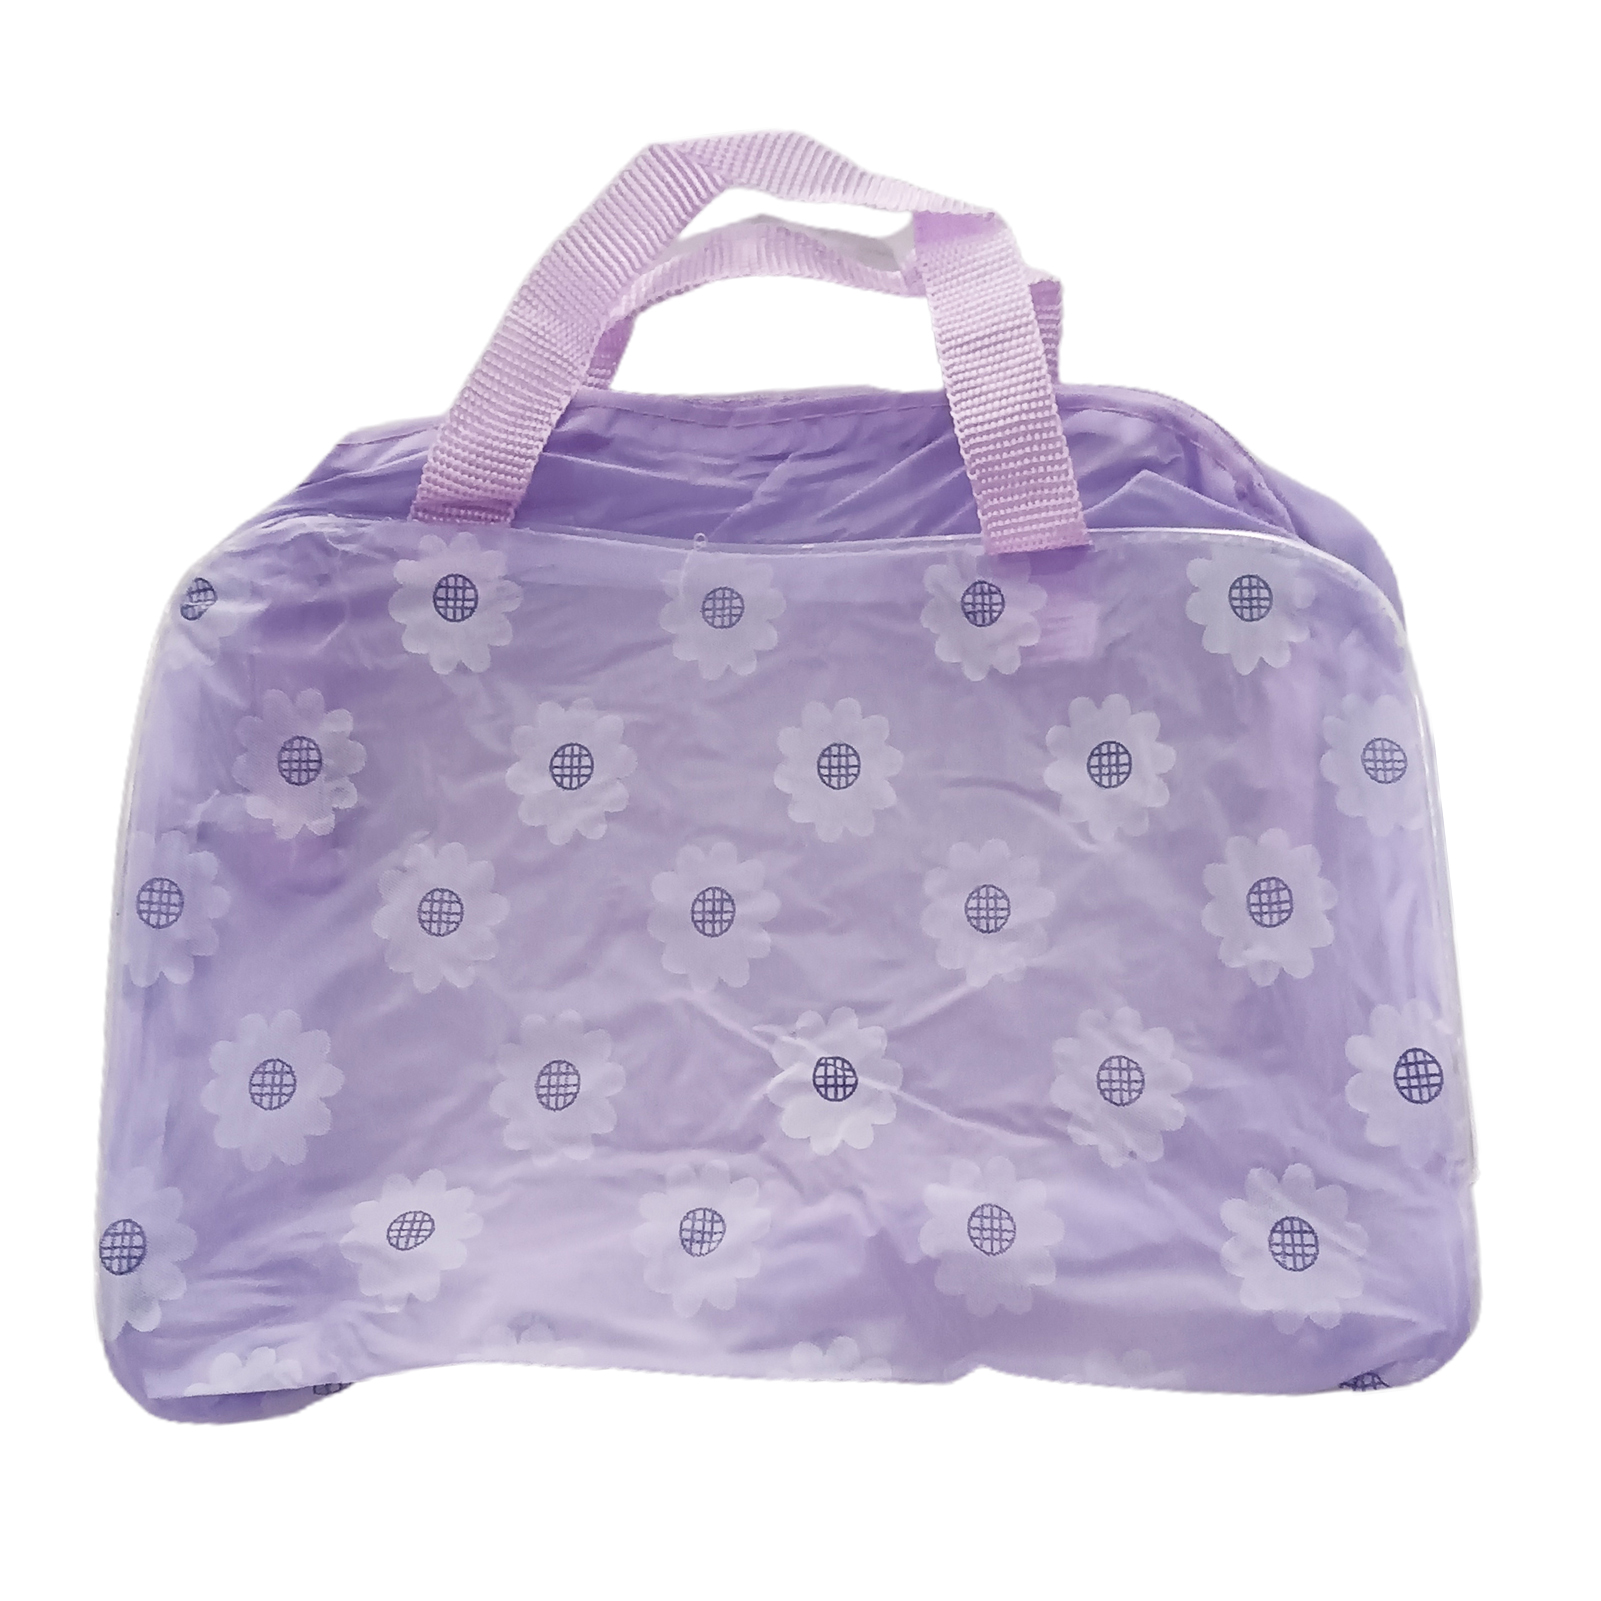 Portable Flower Waterproof Travel Cosmetic Toiletry Storage Pouch Makeup Bag